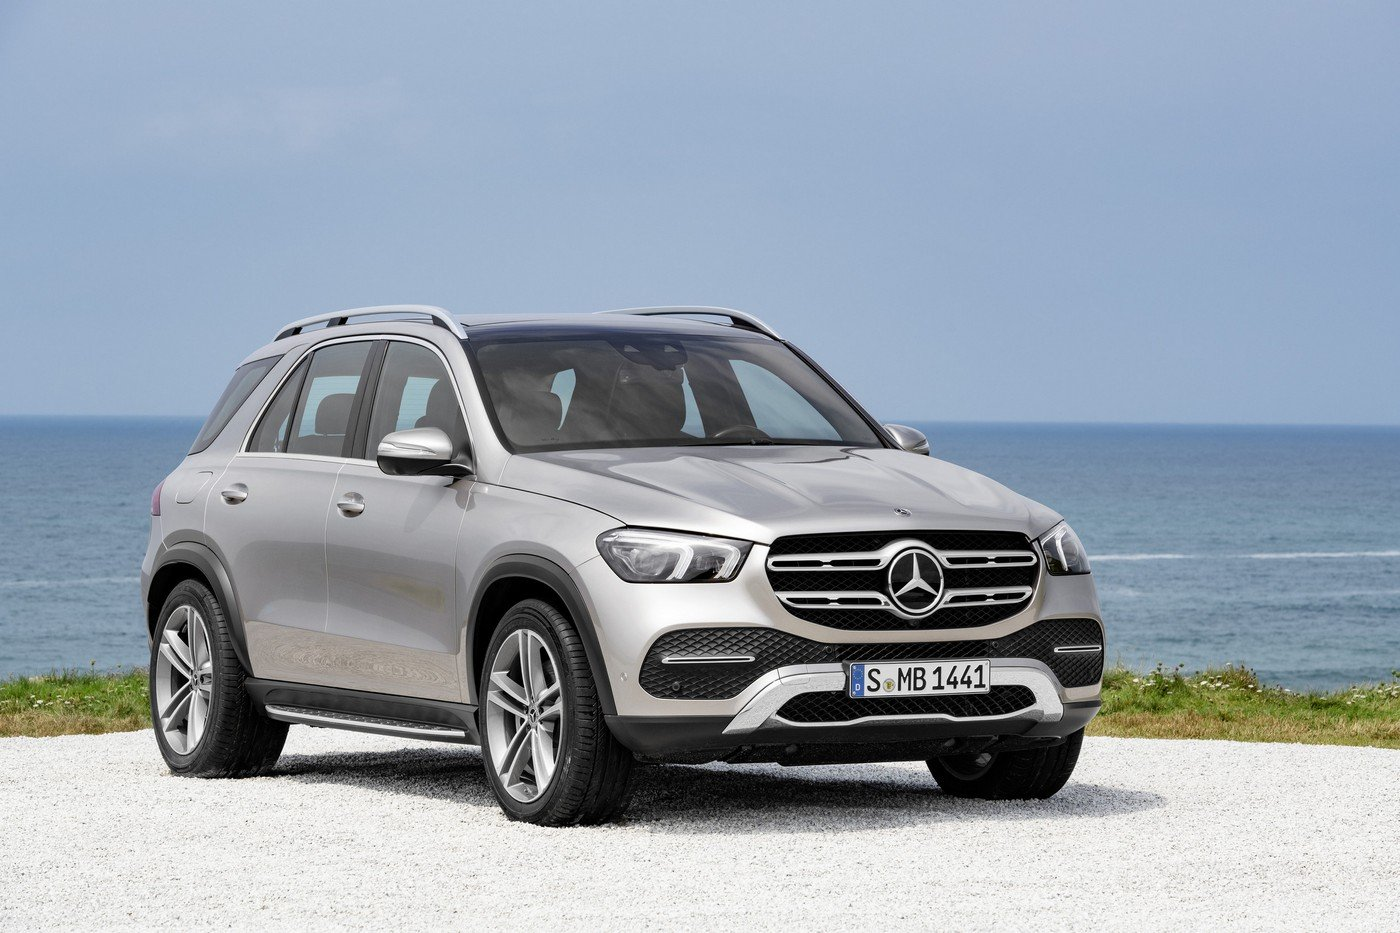 Cars With Third Row Seating >> The 2020 Mercedes-Benz GLE unveiled comes with Intelligent suspension, gesture tech, a hybrid ...